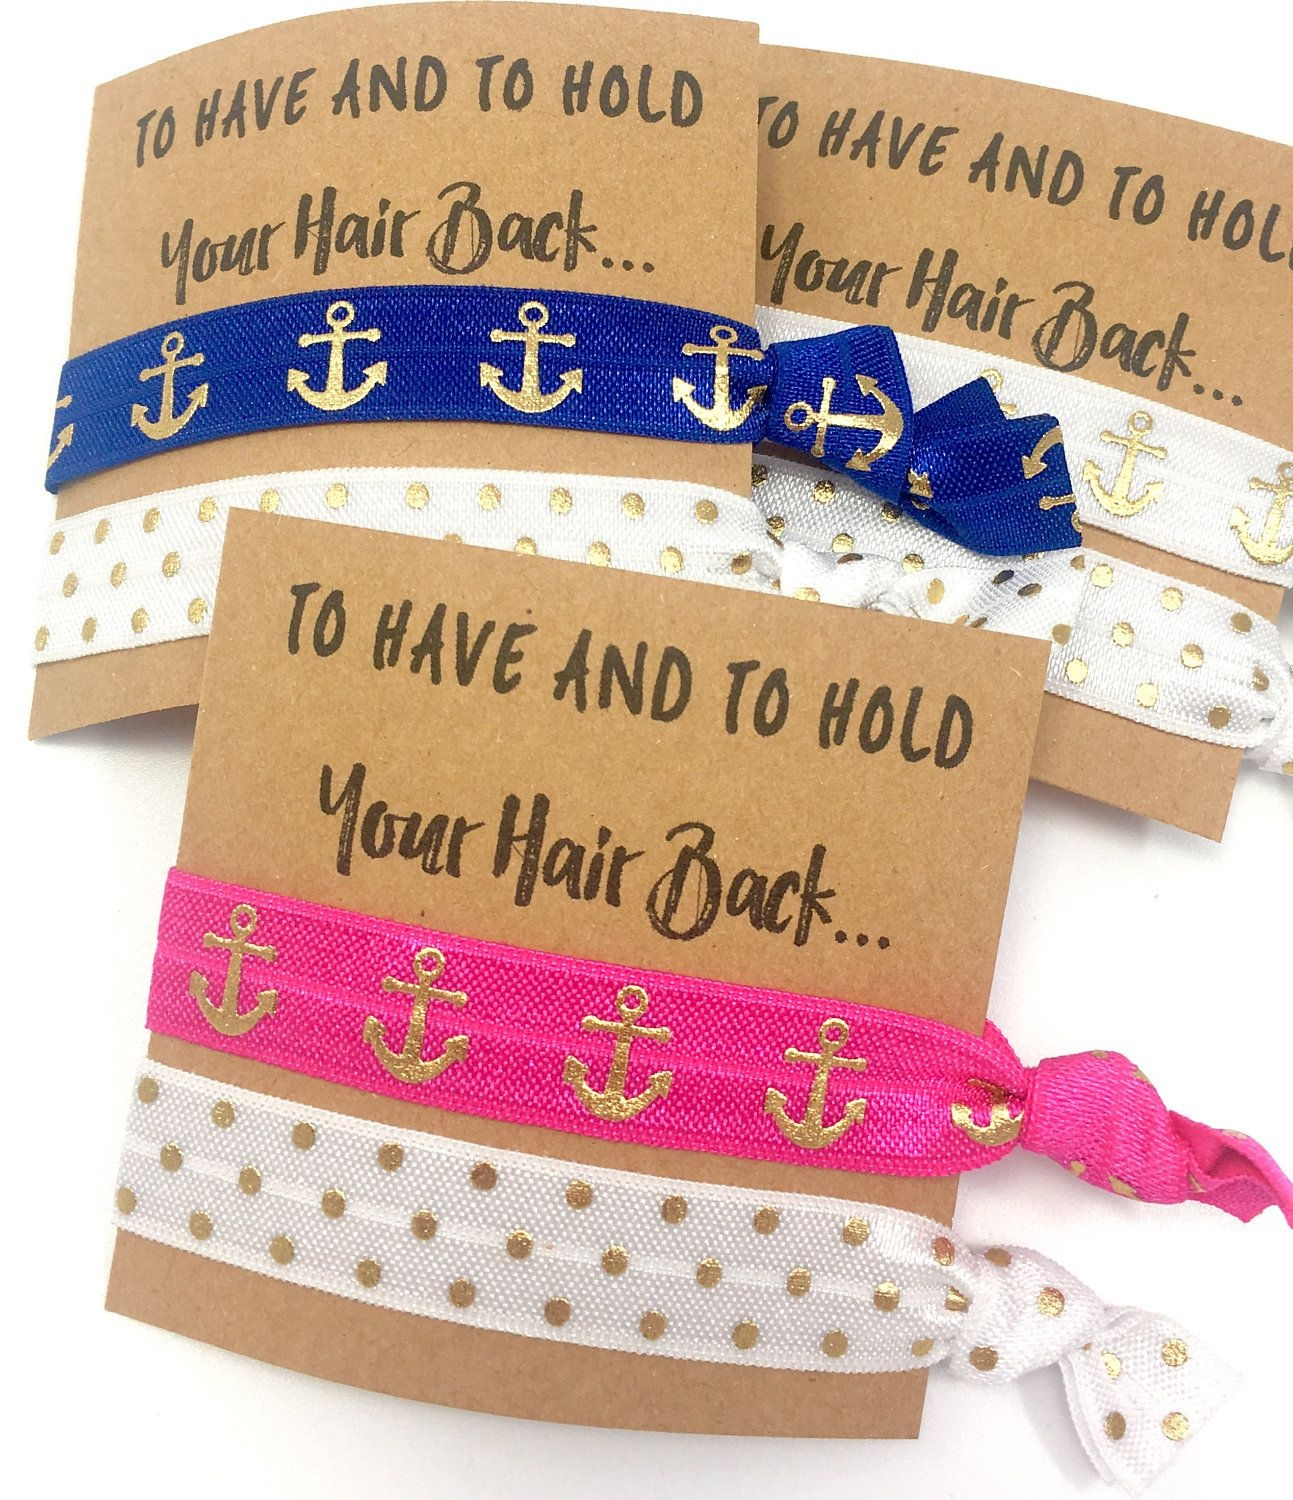 Etsy Vendor Product Description | Pinterest | Bridal Showers, Bridal - To Have And To Hold Your Hair Back Free Printable